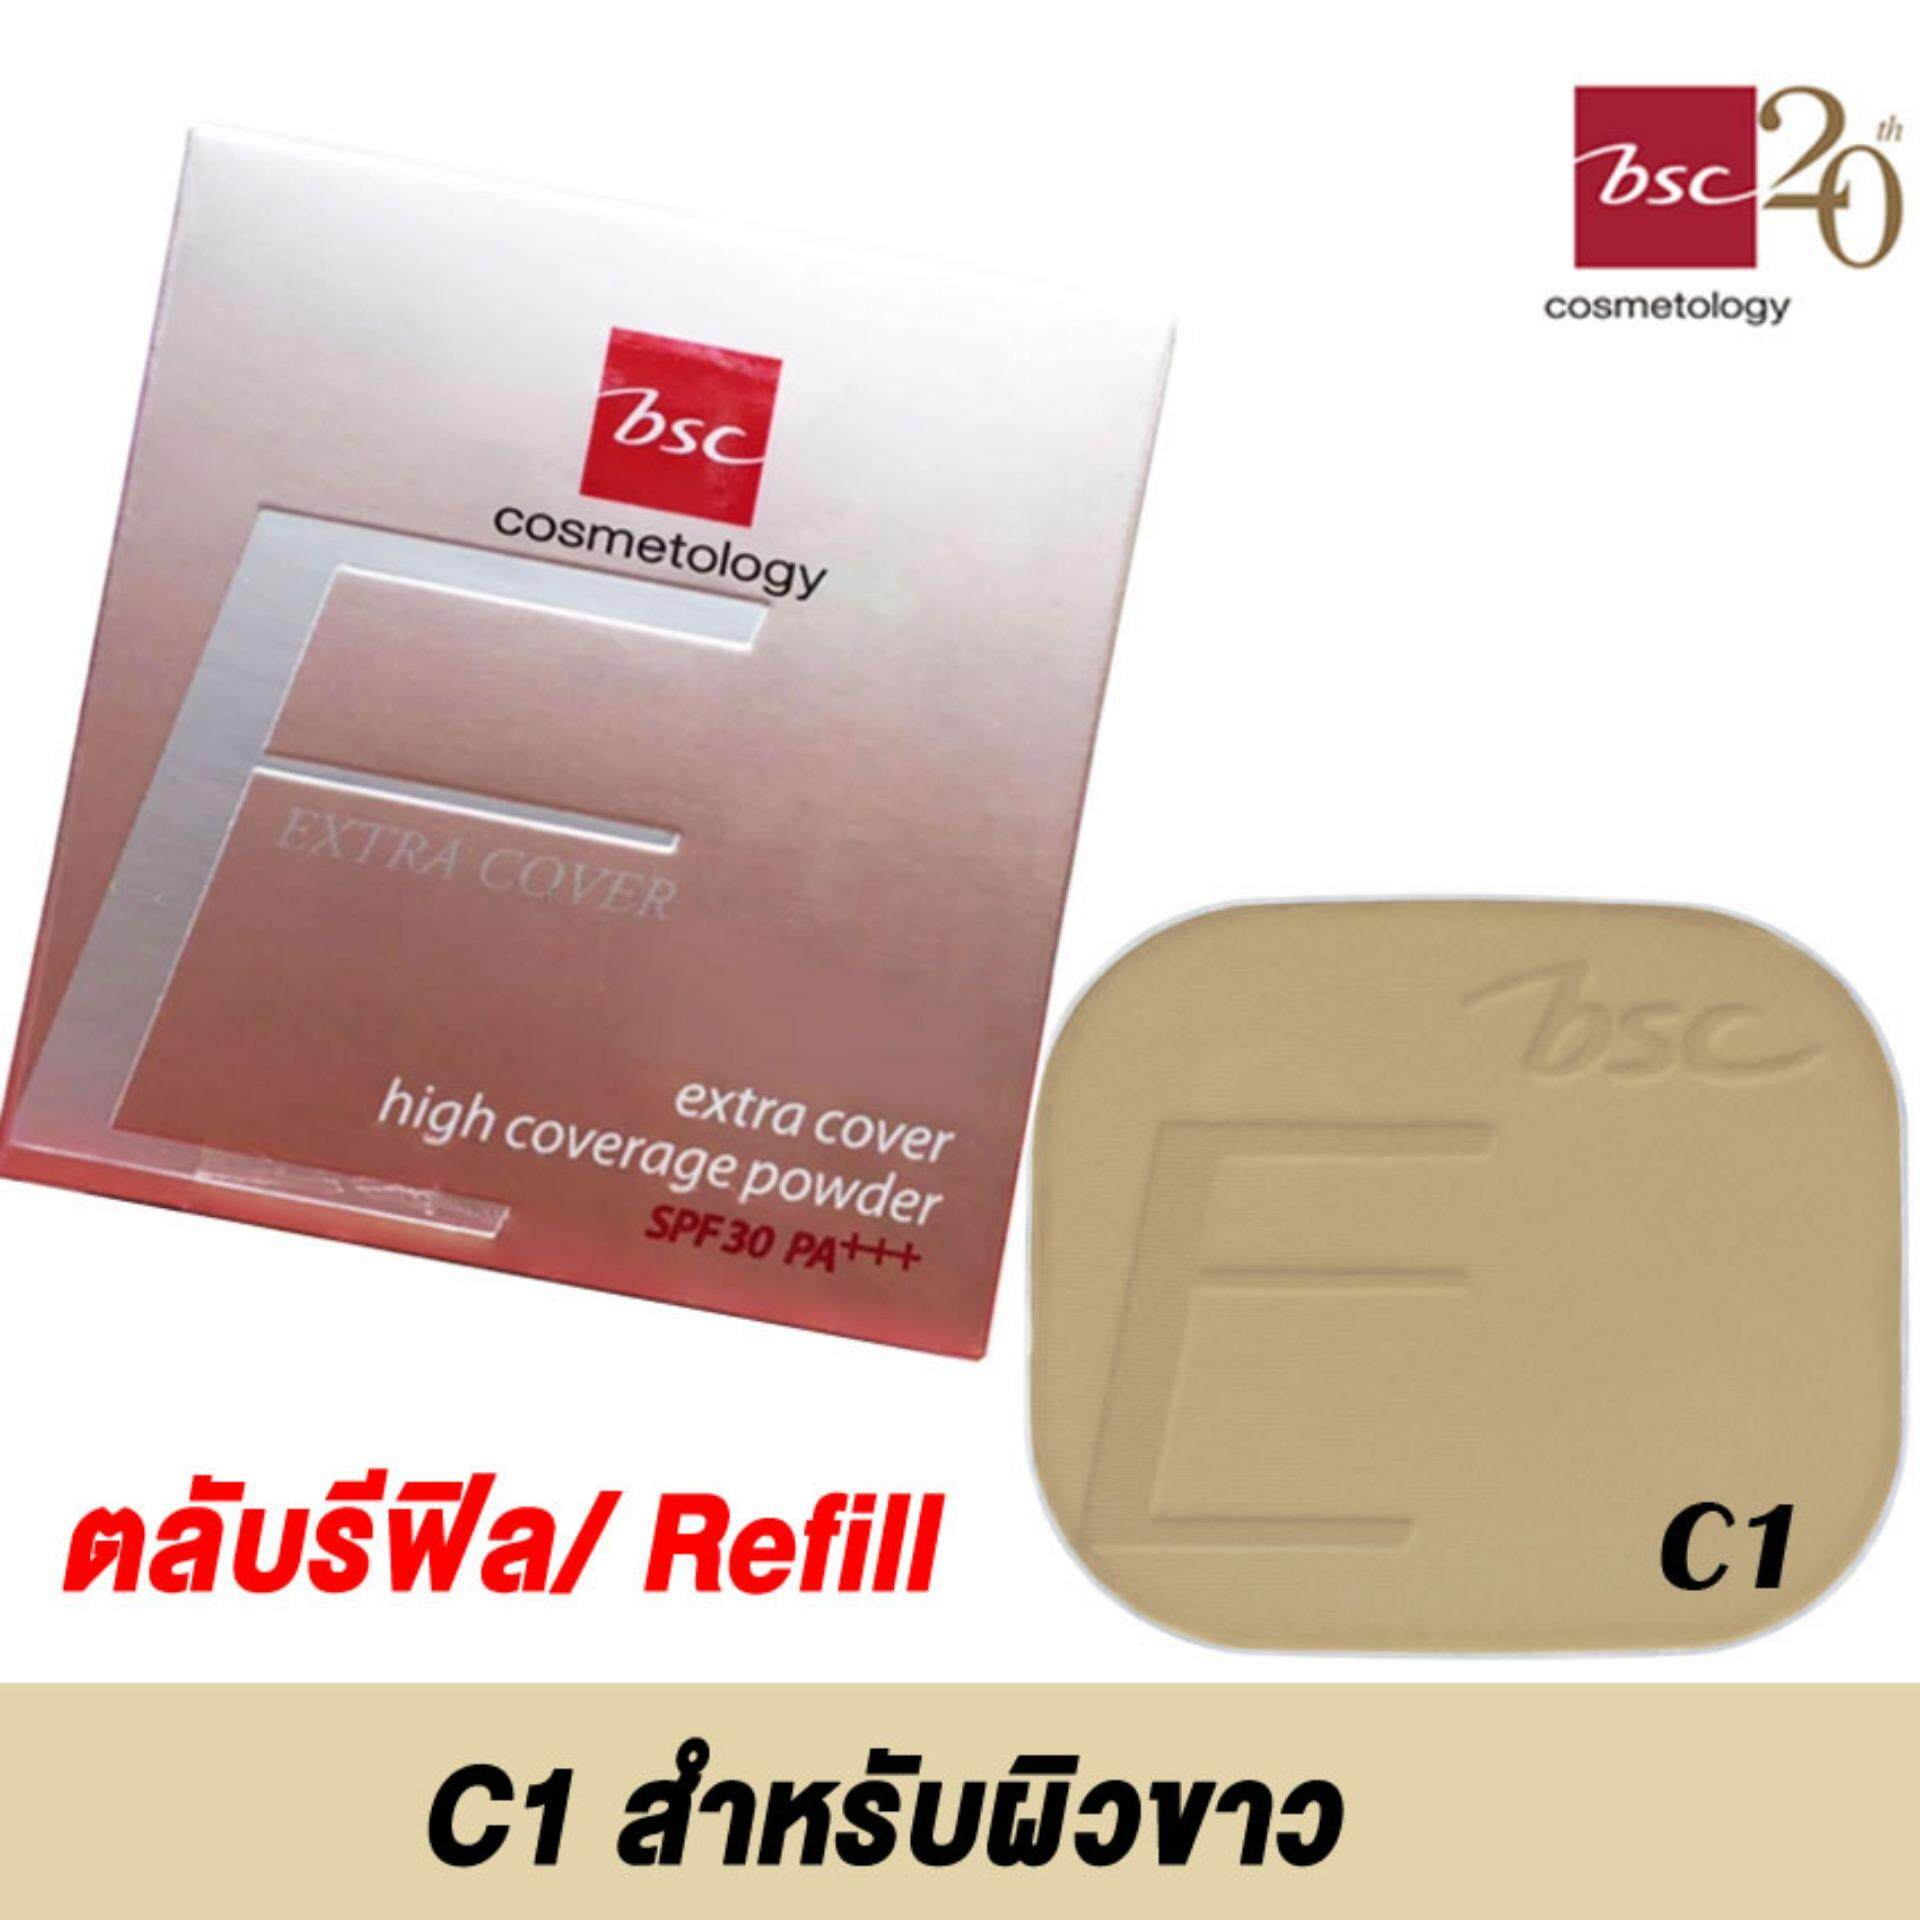 BSC EXTRA COVER HIGH COVERAGE POWDER SPF30 PA+++ C1 ผิวขาว (REFILL)